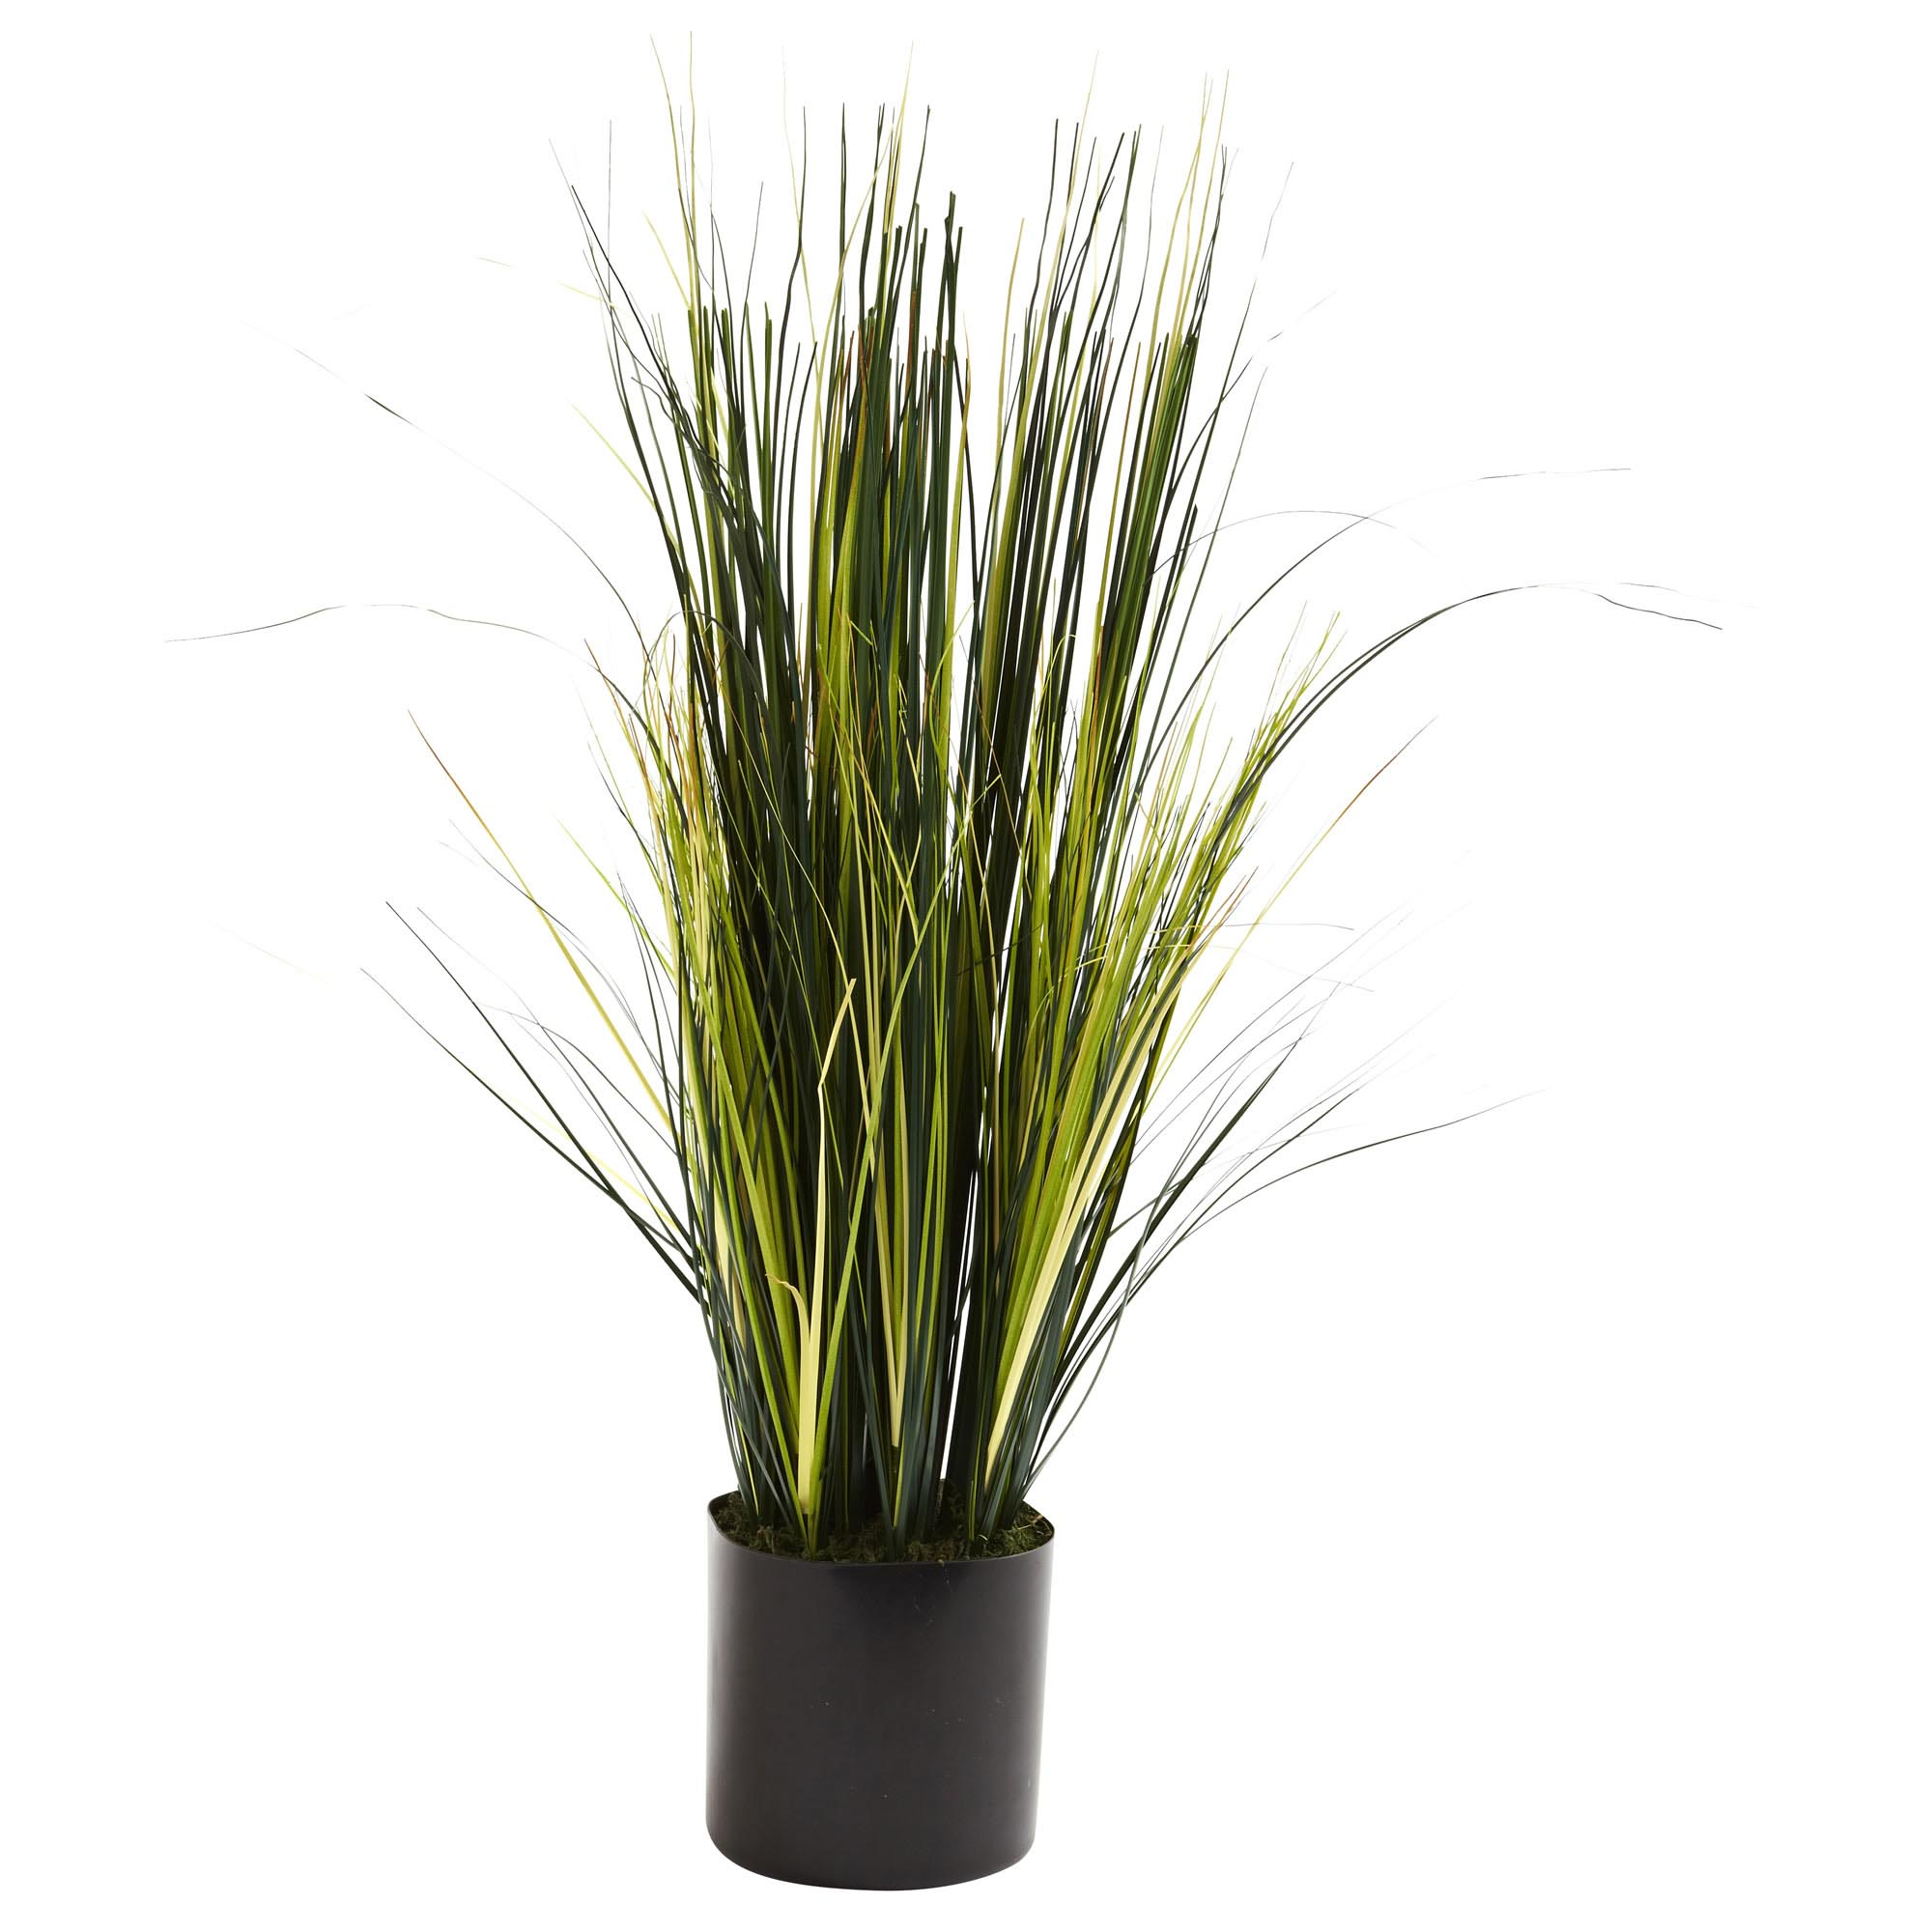 3 foot artificial onion grass plant potted 6766 Long grass plants